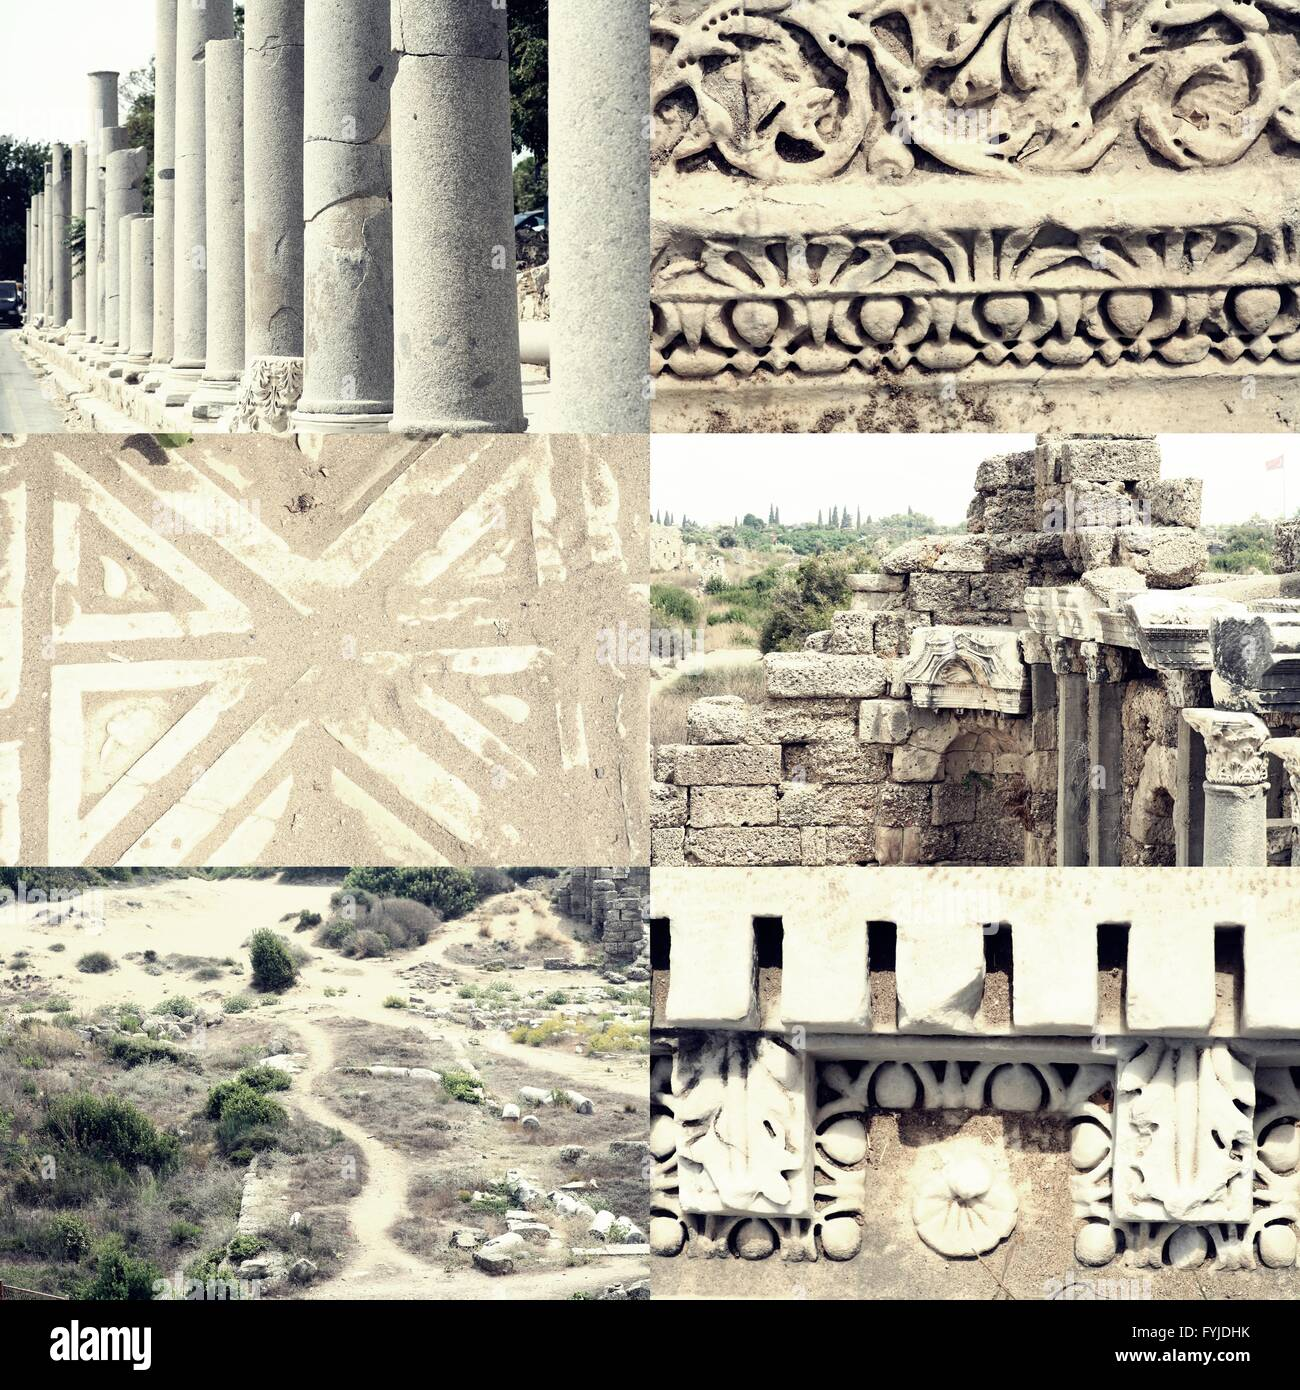 Pillars, ornaments and ruined buildings set of images of ancient Roman architecture in Side, Turkey Stock Photo